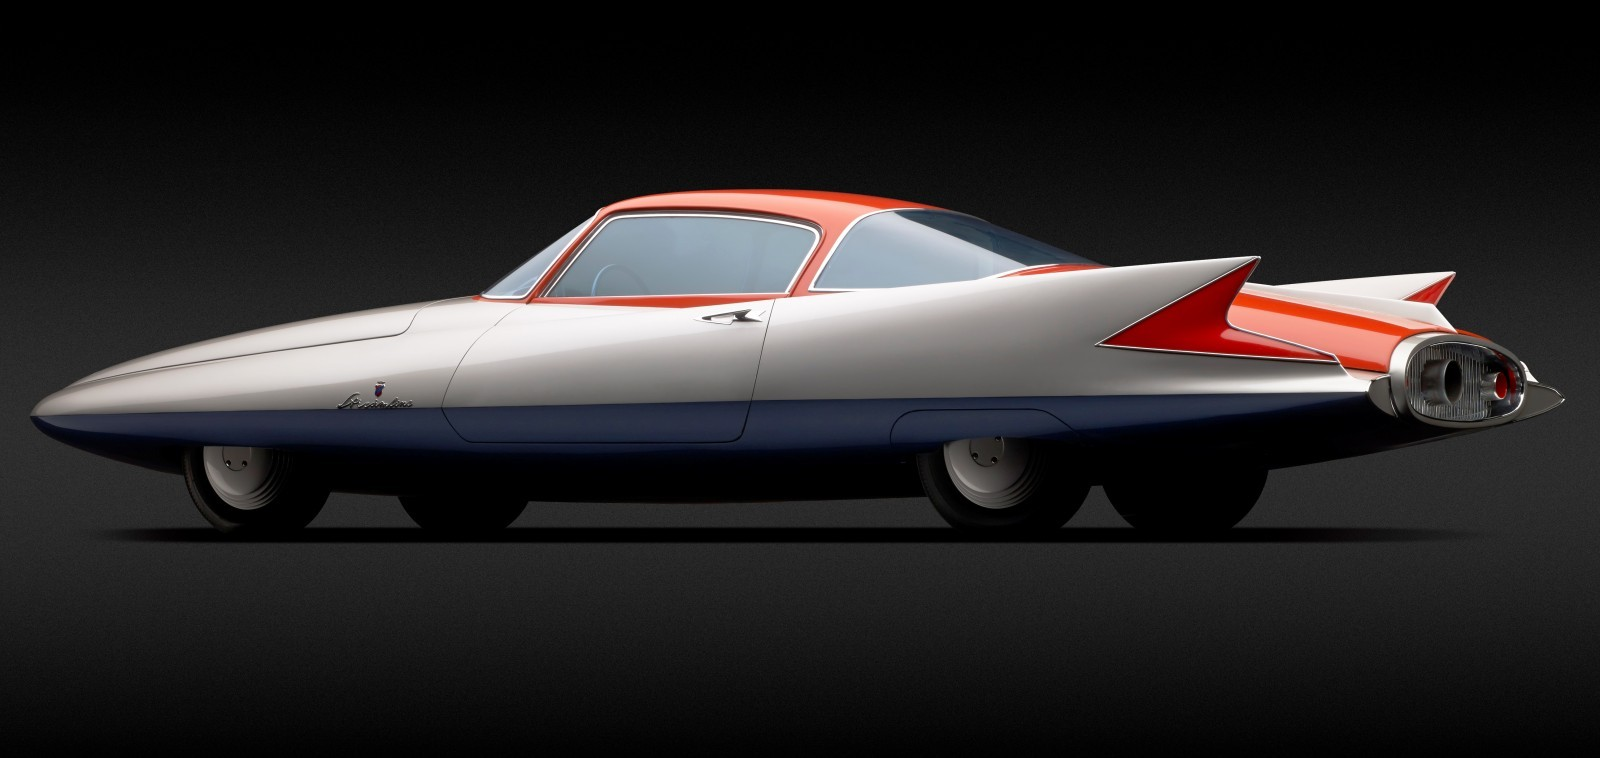 Atlanta Dream Cars - 1955 Chrysler Streamline X Ghilda by GHIA is Turbine Car Ideal 1